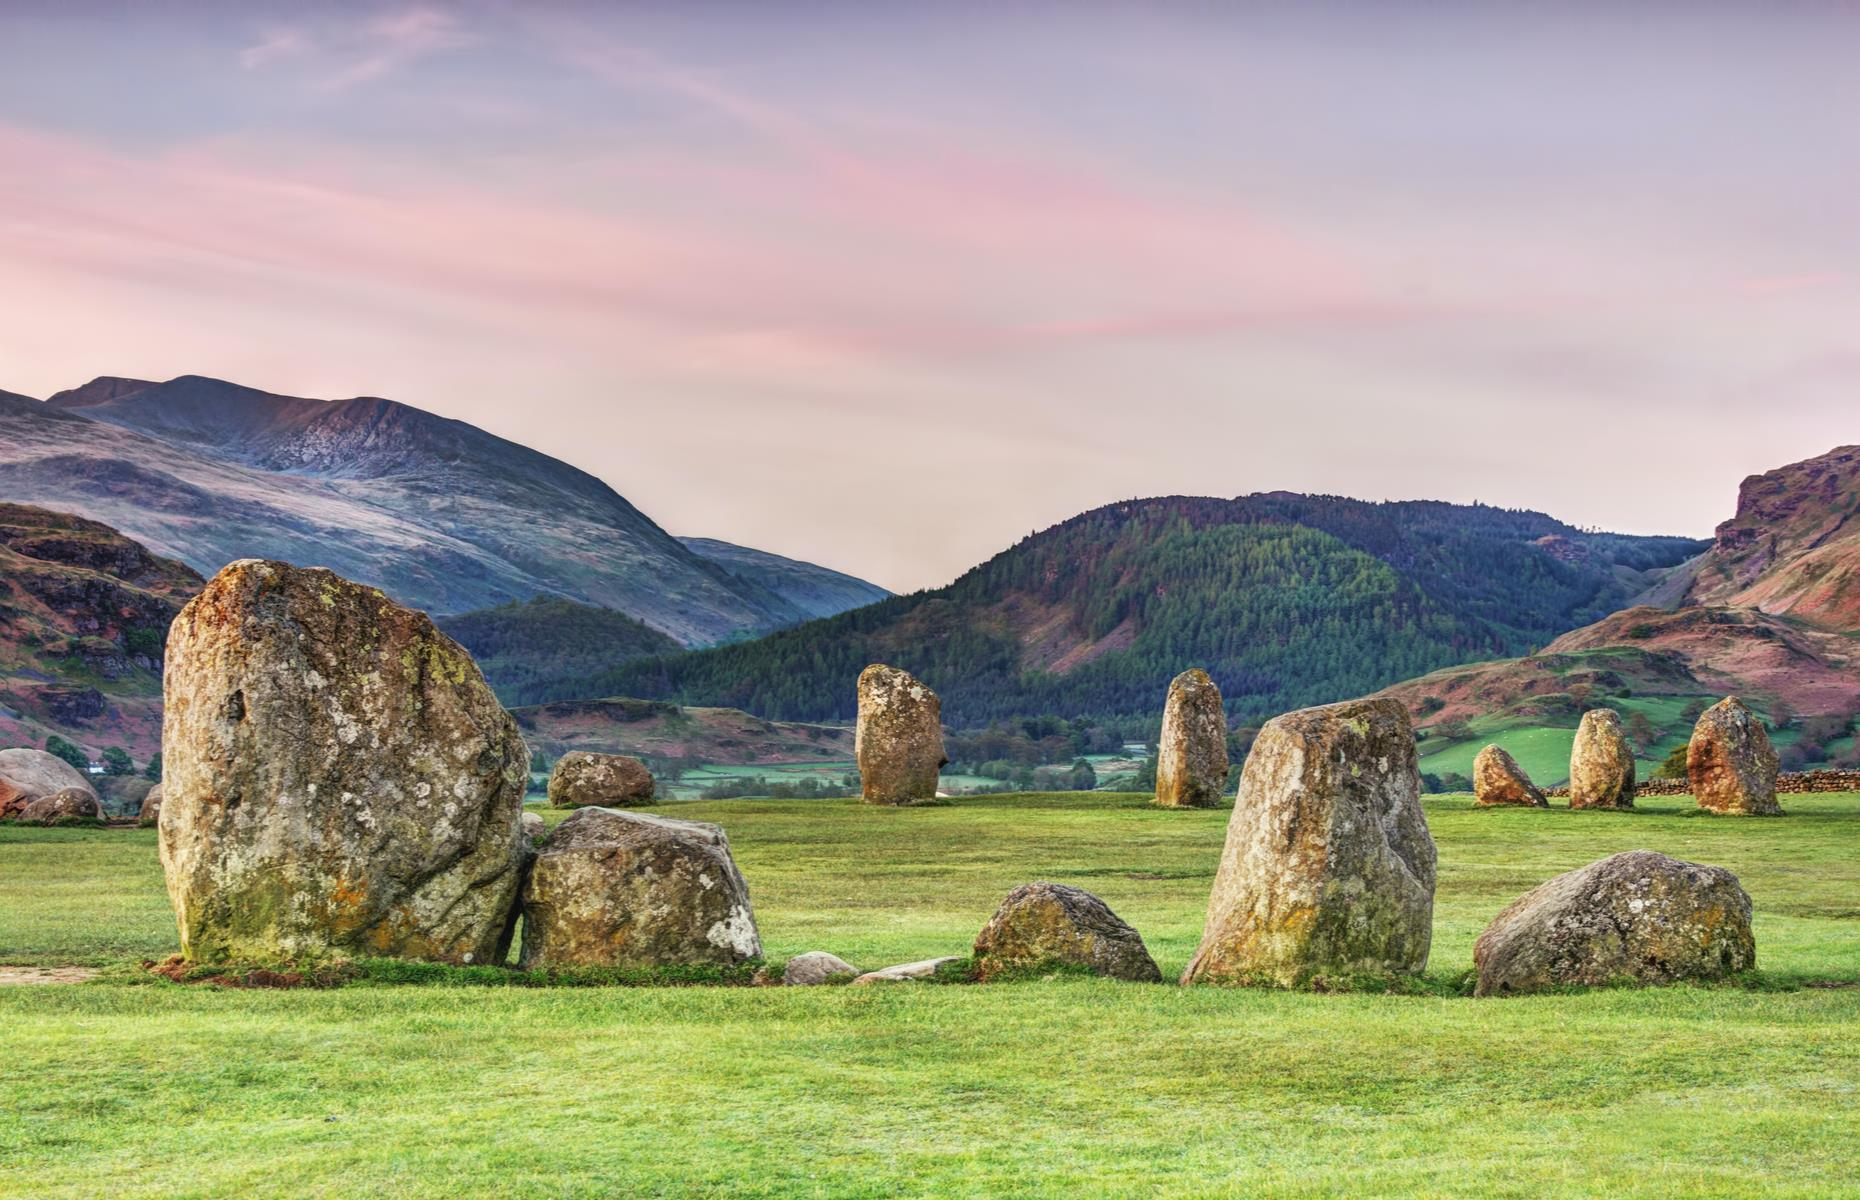 Slide 5 of 31: One of Britain's most ancient circles, Castlerigg, sits high in the fells of Cumbria – a suitably beguiling setting for such a mystical place. The ring of 38 stones is encircled with the brooding forms of Skiddaw, Blencathra, Castlerigg Fell, High Rigg and Clough Head. It was erected by Neolithic farming communities around 4,500 years ago, possibly as a meeting place.